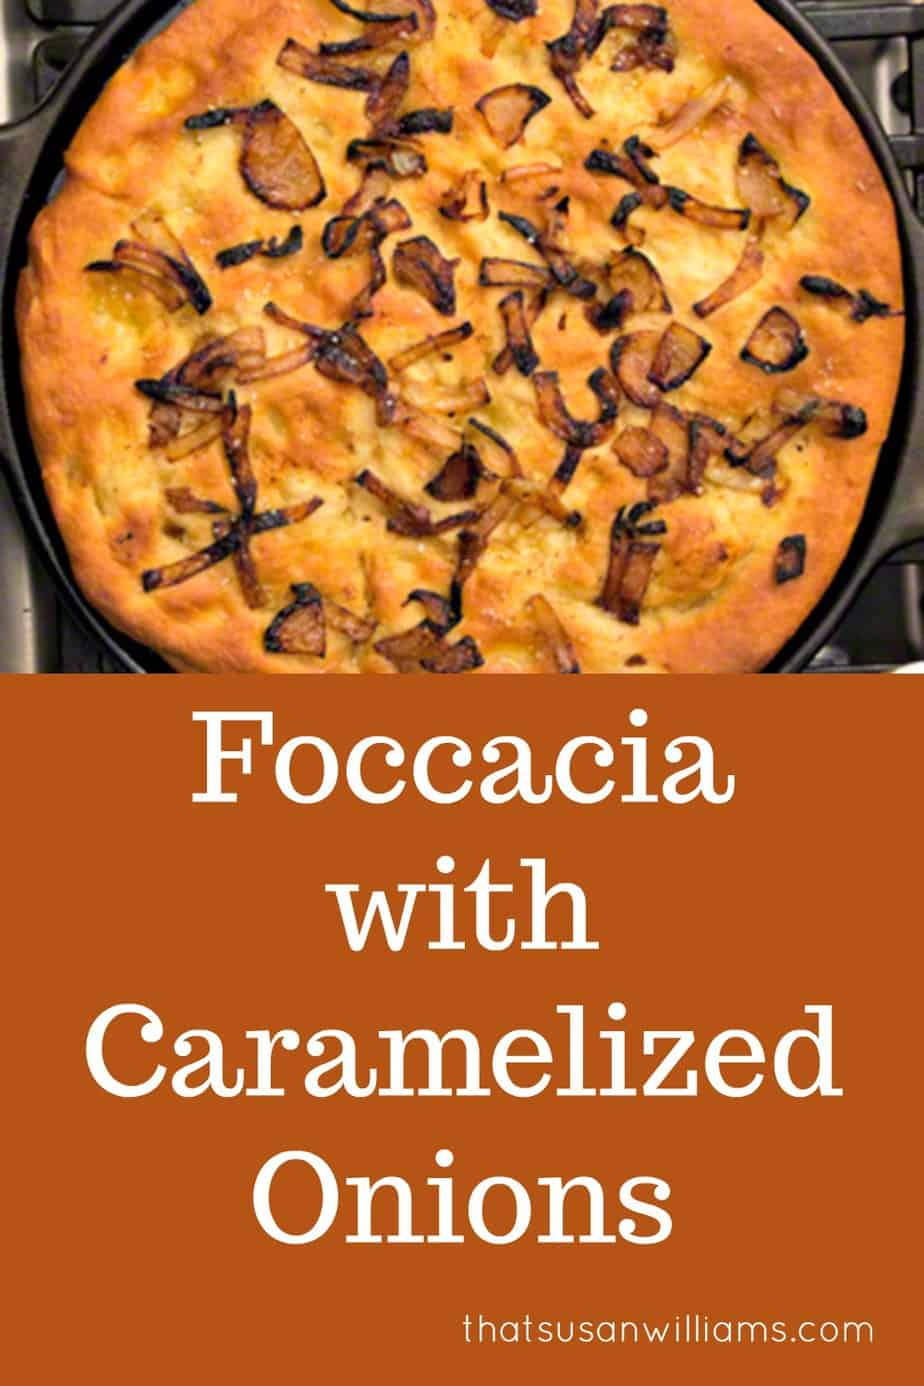 Foccacia with Caramelized Onions is a delicious Italian bread recipe, the perfect accompaniment to your favorite bowl of soup. #foccacia #bread #breadrecipe #caramelizedonions